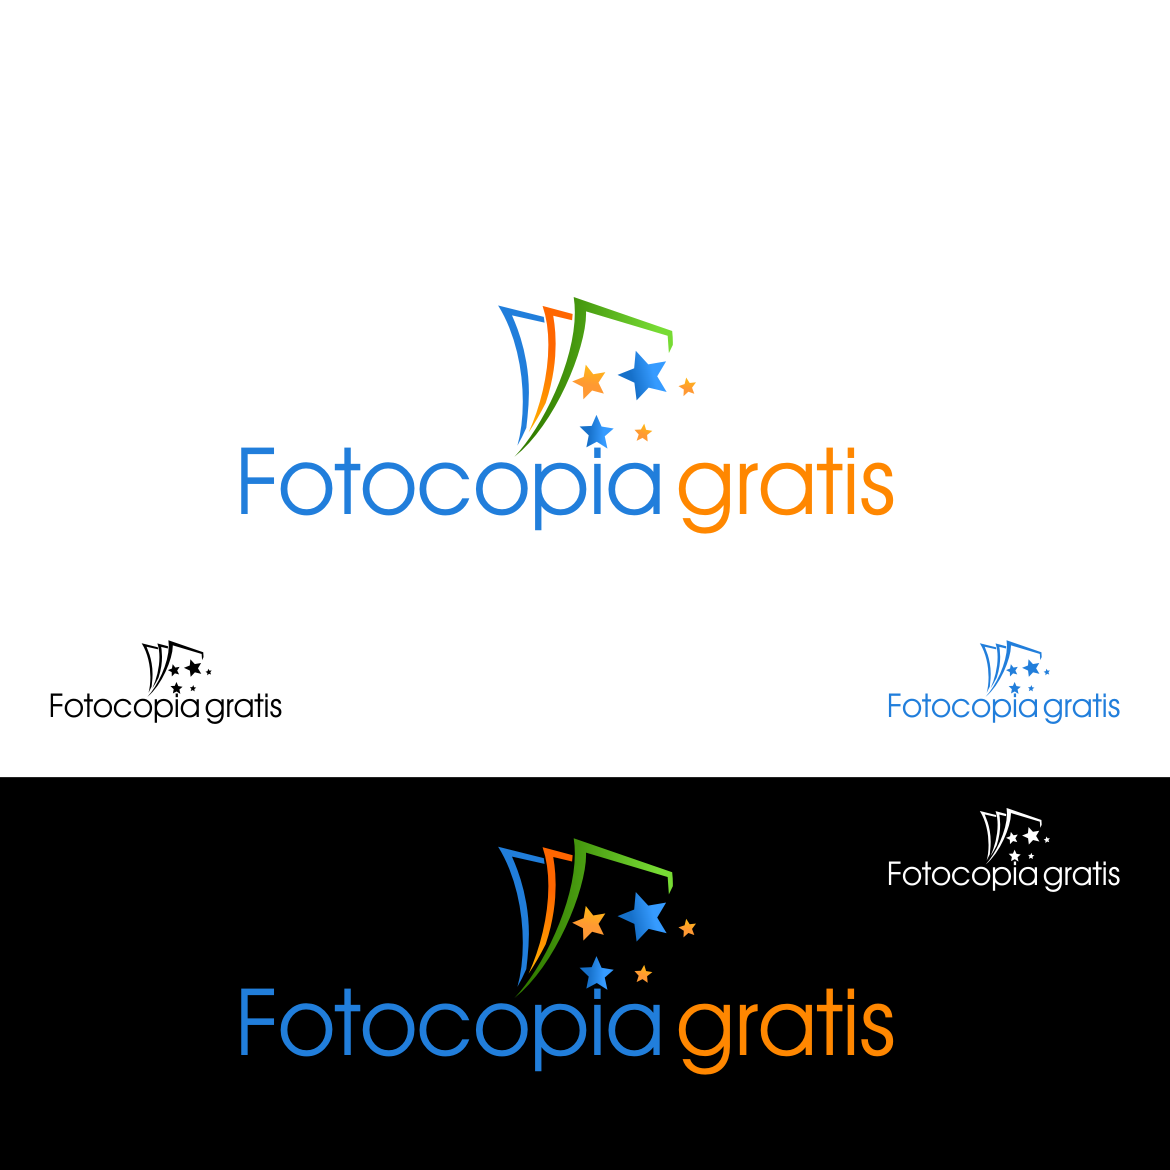 Logo Design by rifatz - Entry No. 101 in the Logo Design Contest Inspiring Logo Design for Fotocopiagratis.